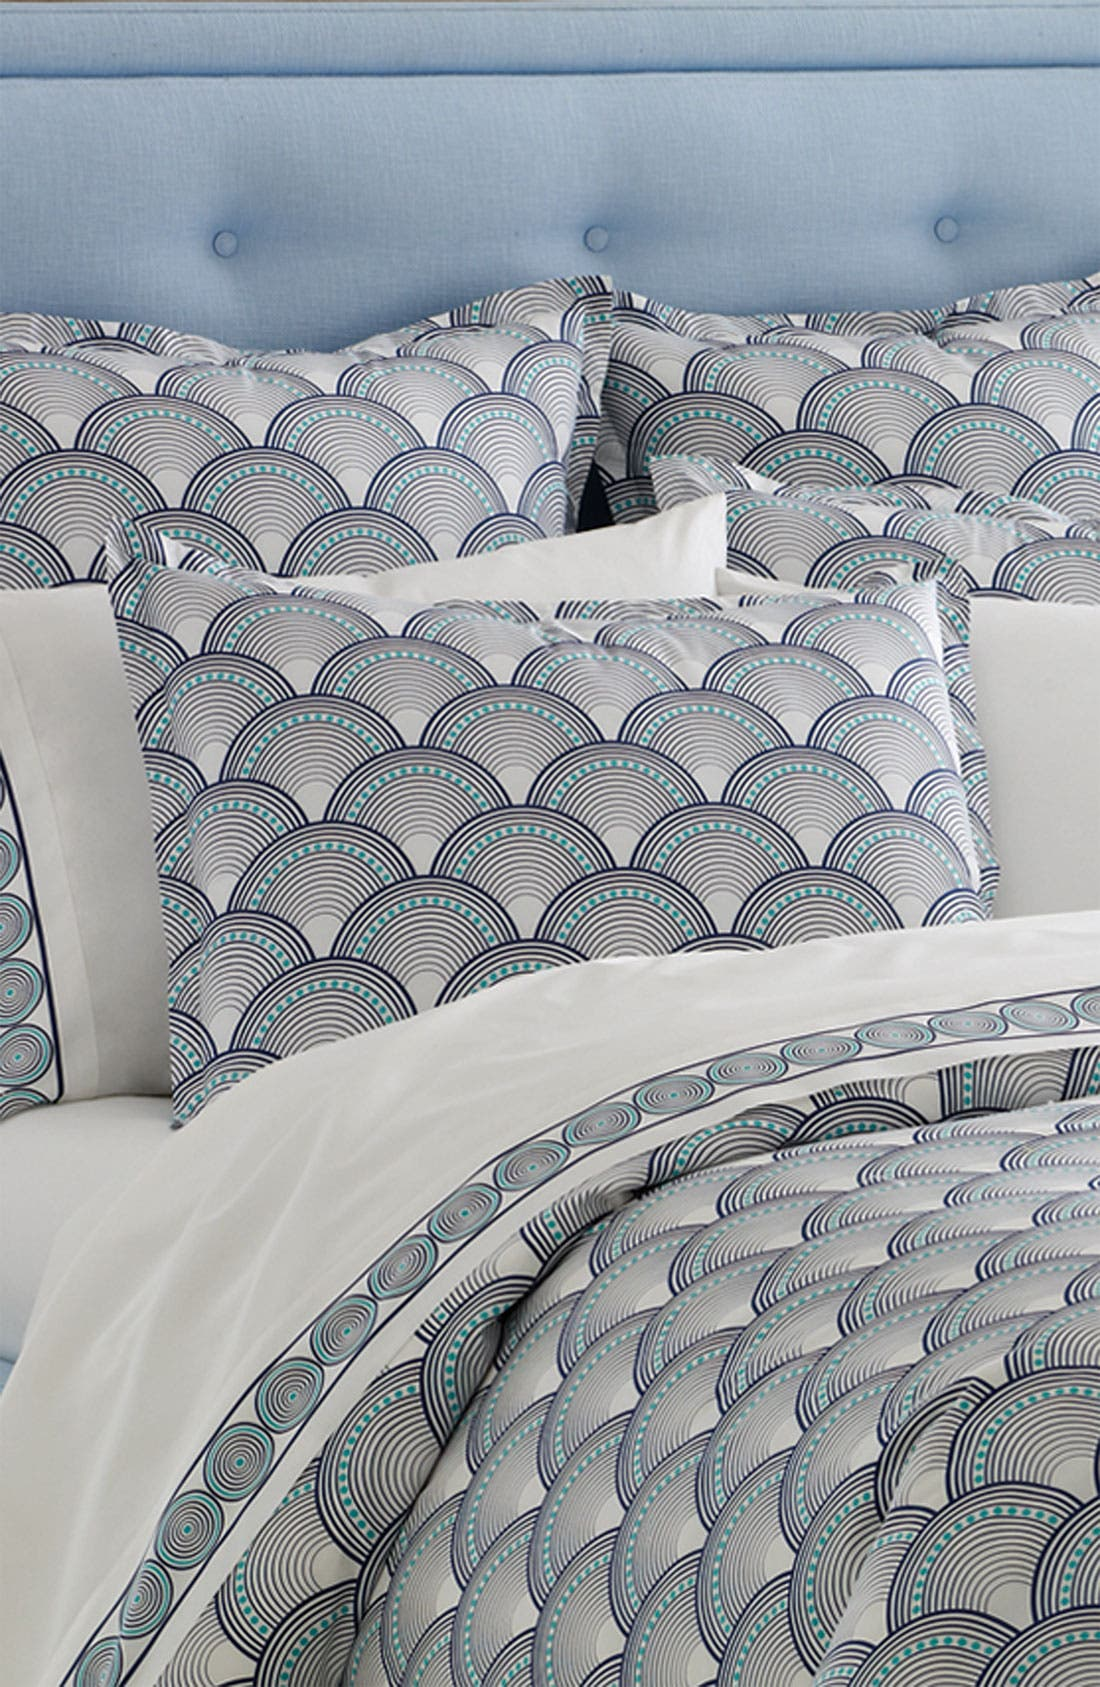 Alternate Image 1 Selected - Jonathan Adler 'Fish Scales' 400 Thread Count Duvet Cover